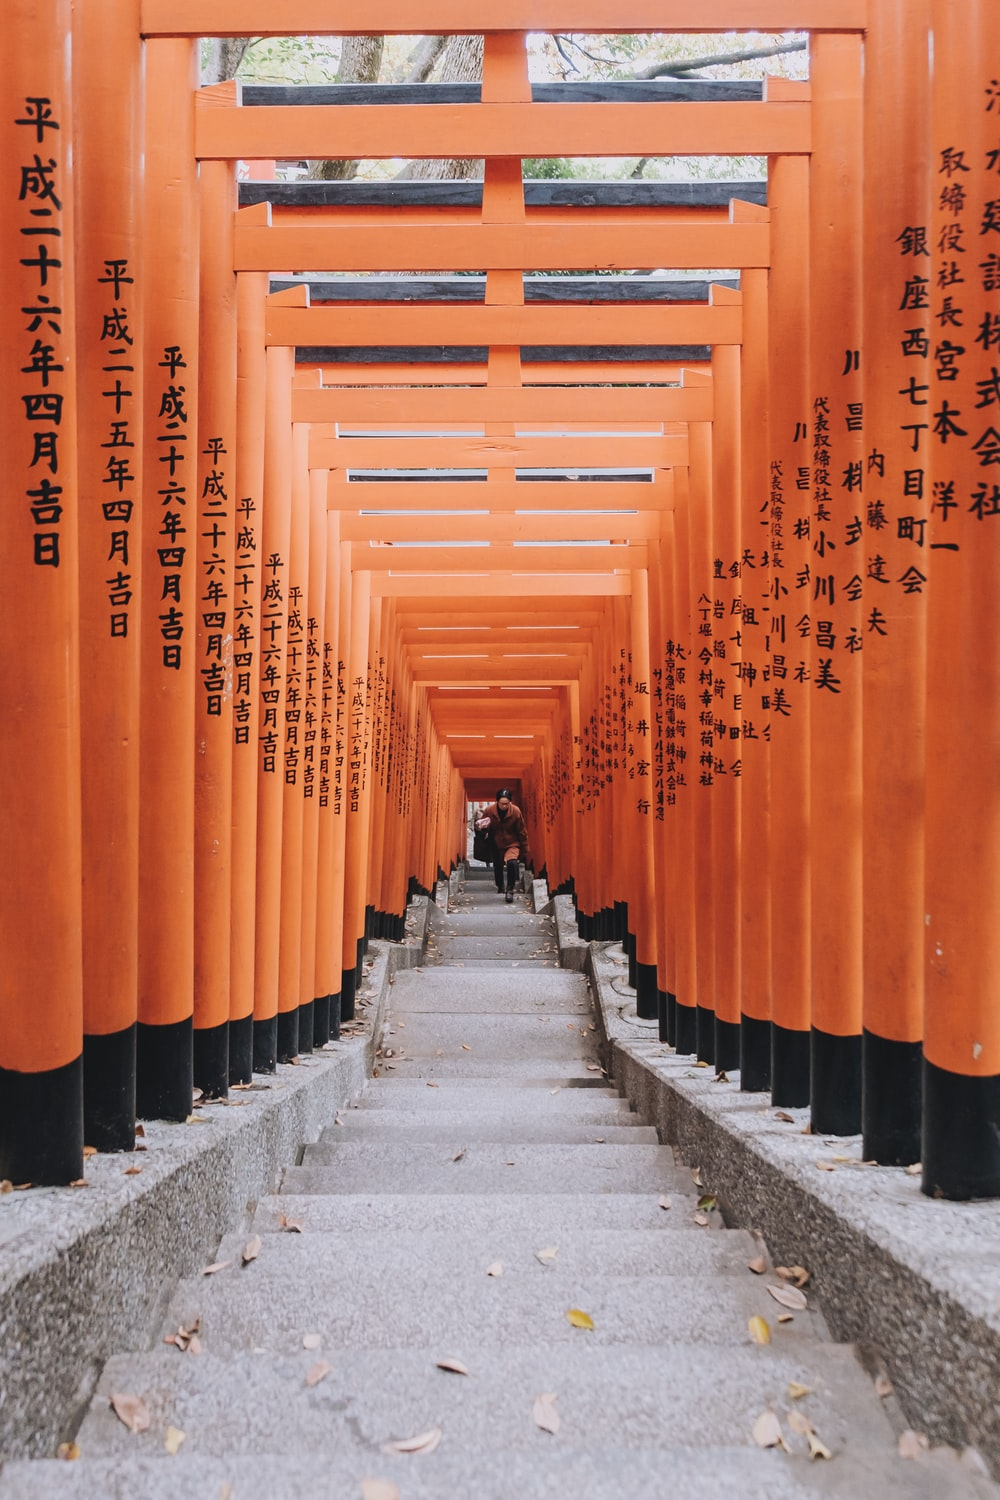 person climbing on stairs with orange pillars